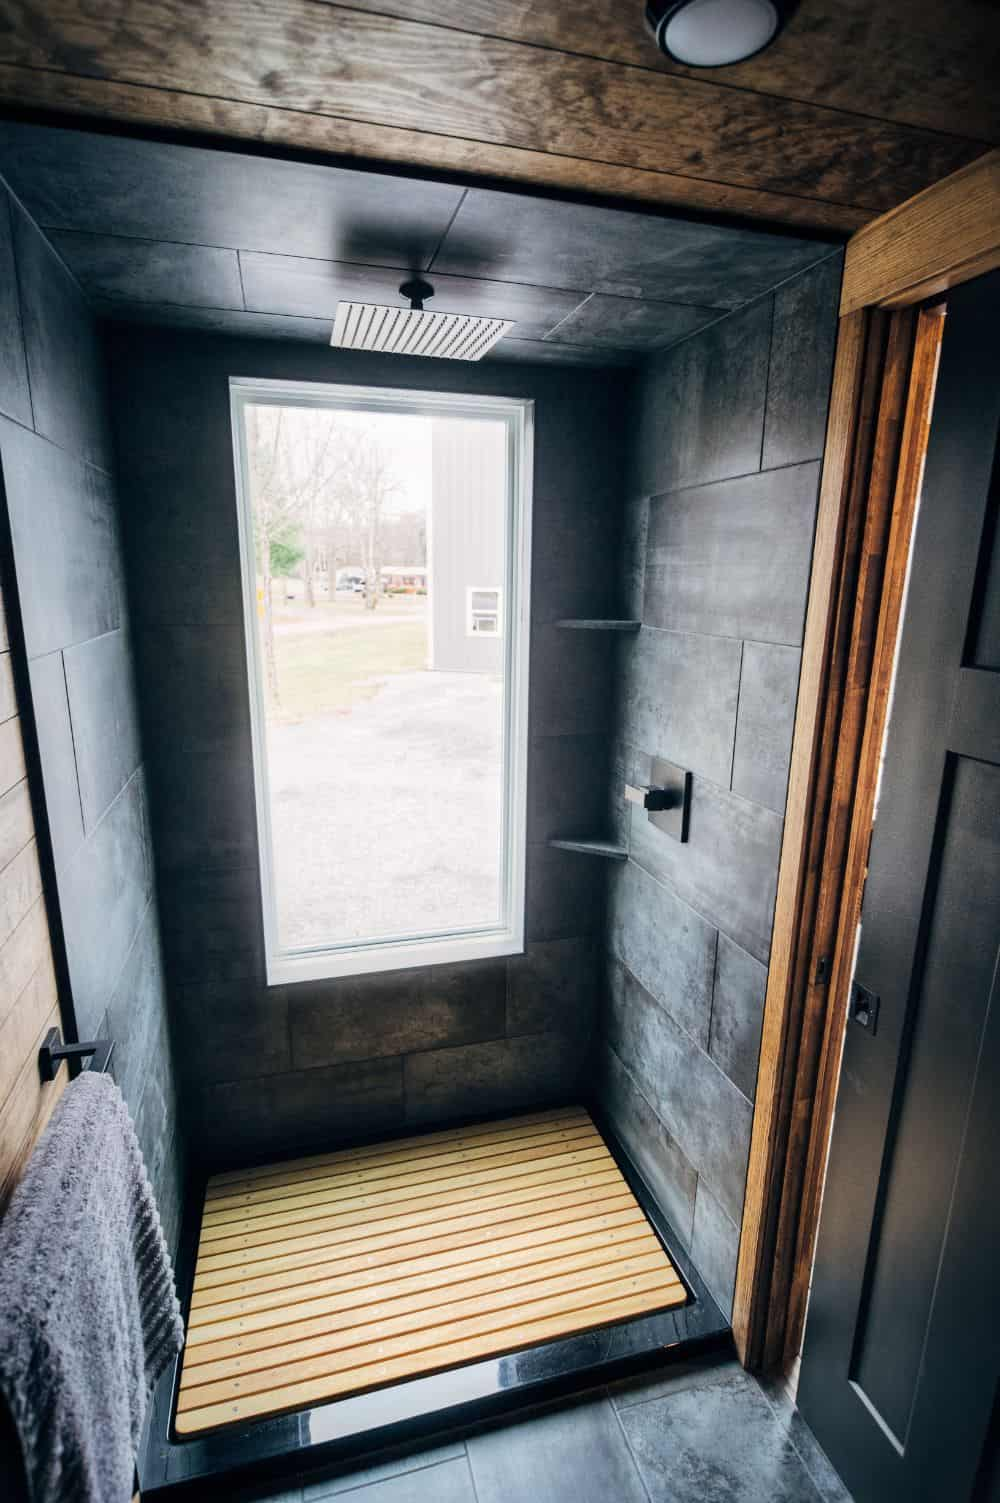 Walk-in shower with large window and wood floor with dark gray tile. This particular shower enjoys a rain shower head.